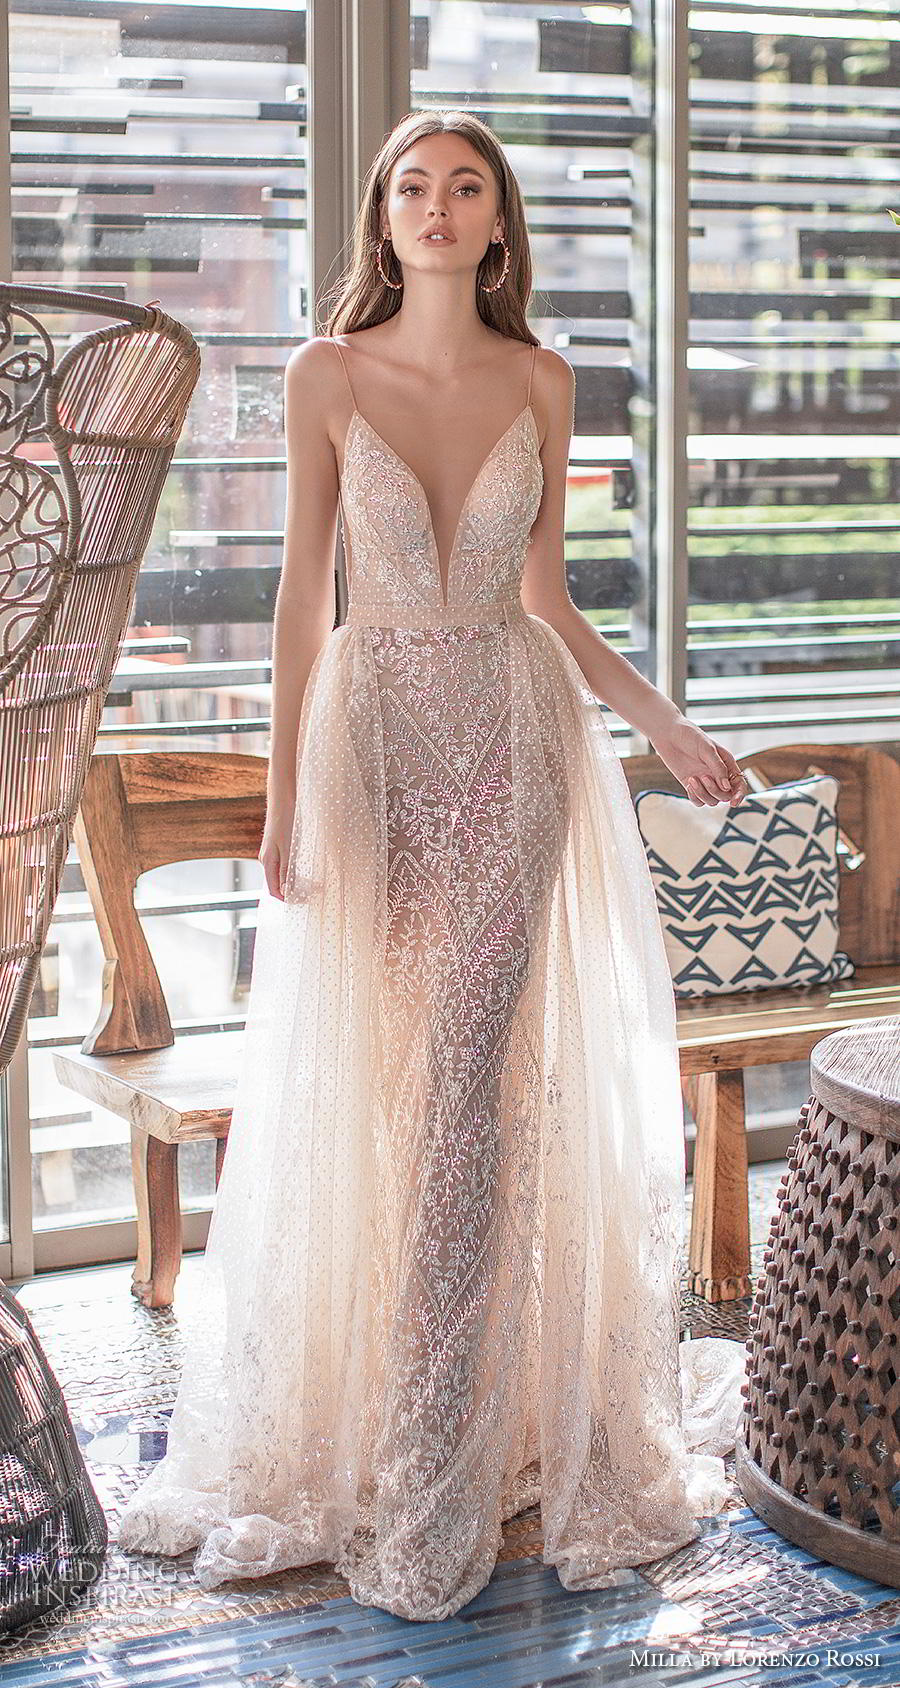 sleeveless spaghetti strap deep plunging sweetheart neckline full embellishment elegant sexy ivory fit and flare wedding dress a  line overskirt low back medium train (4) mv